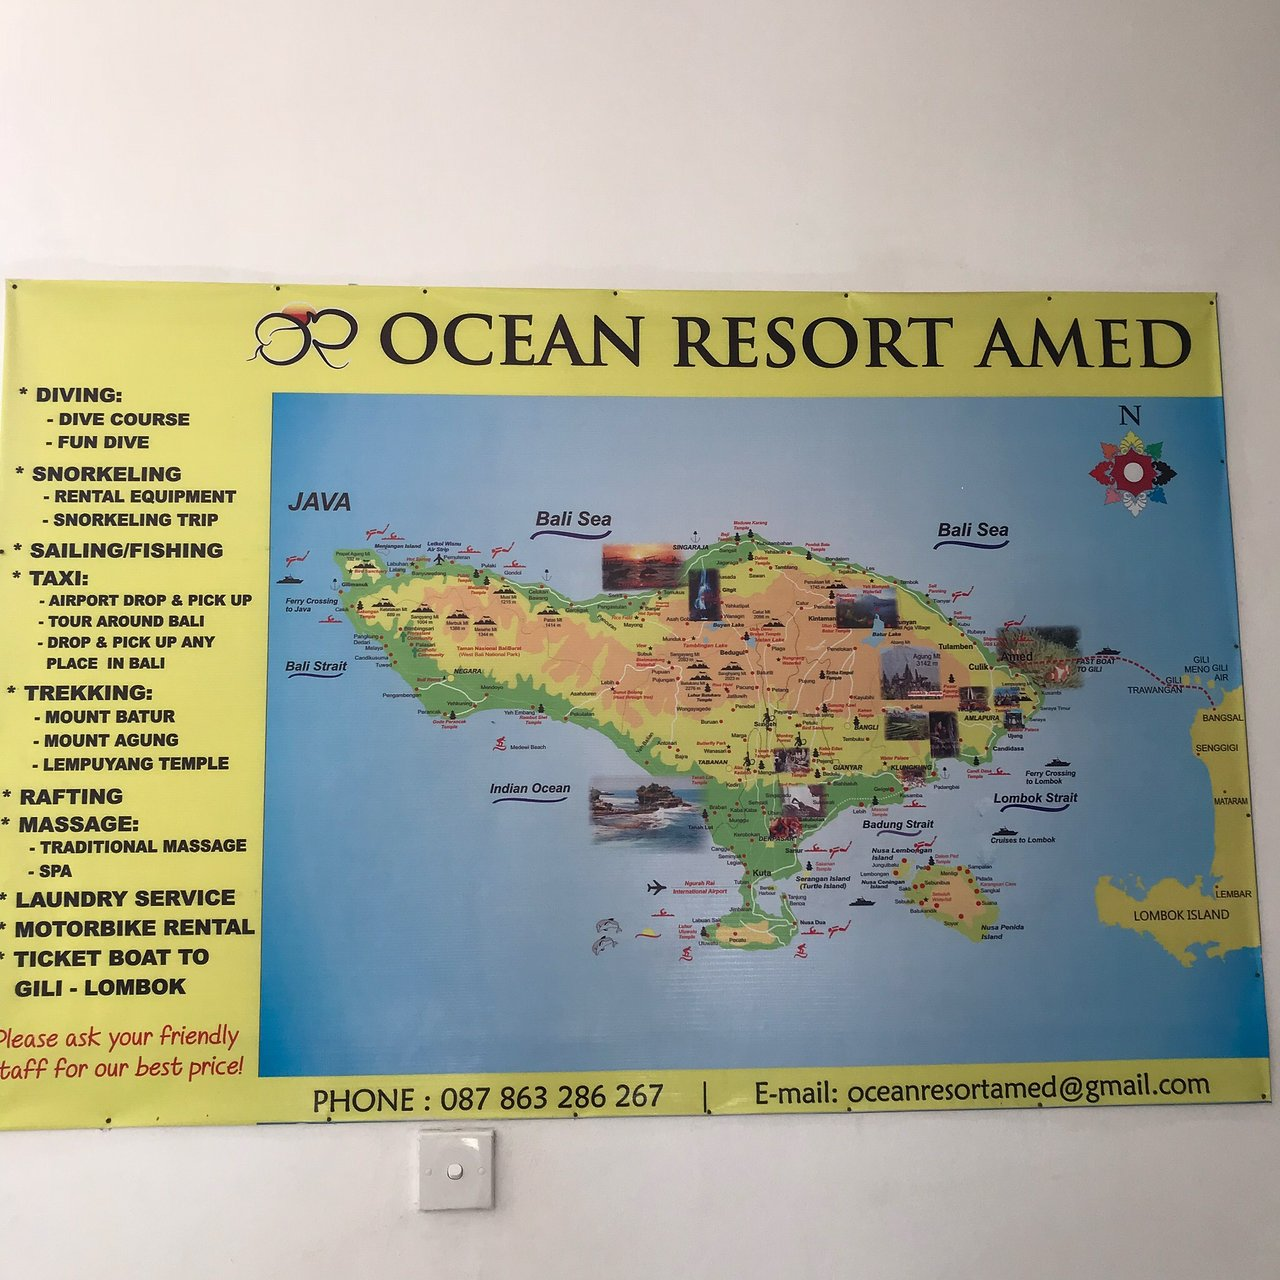 OCEAN RESORT AMED $12 $̶2̶0̶ Updated 2019 Prices & Reviews